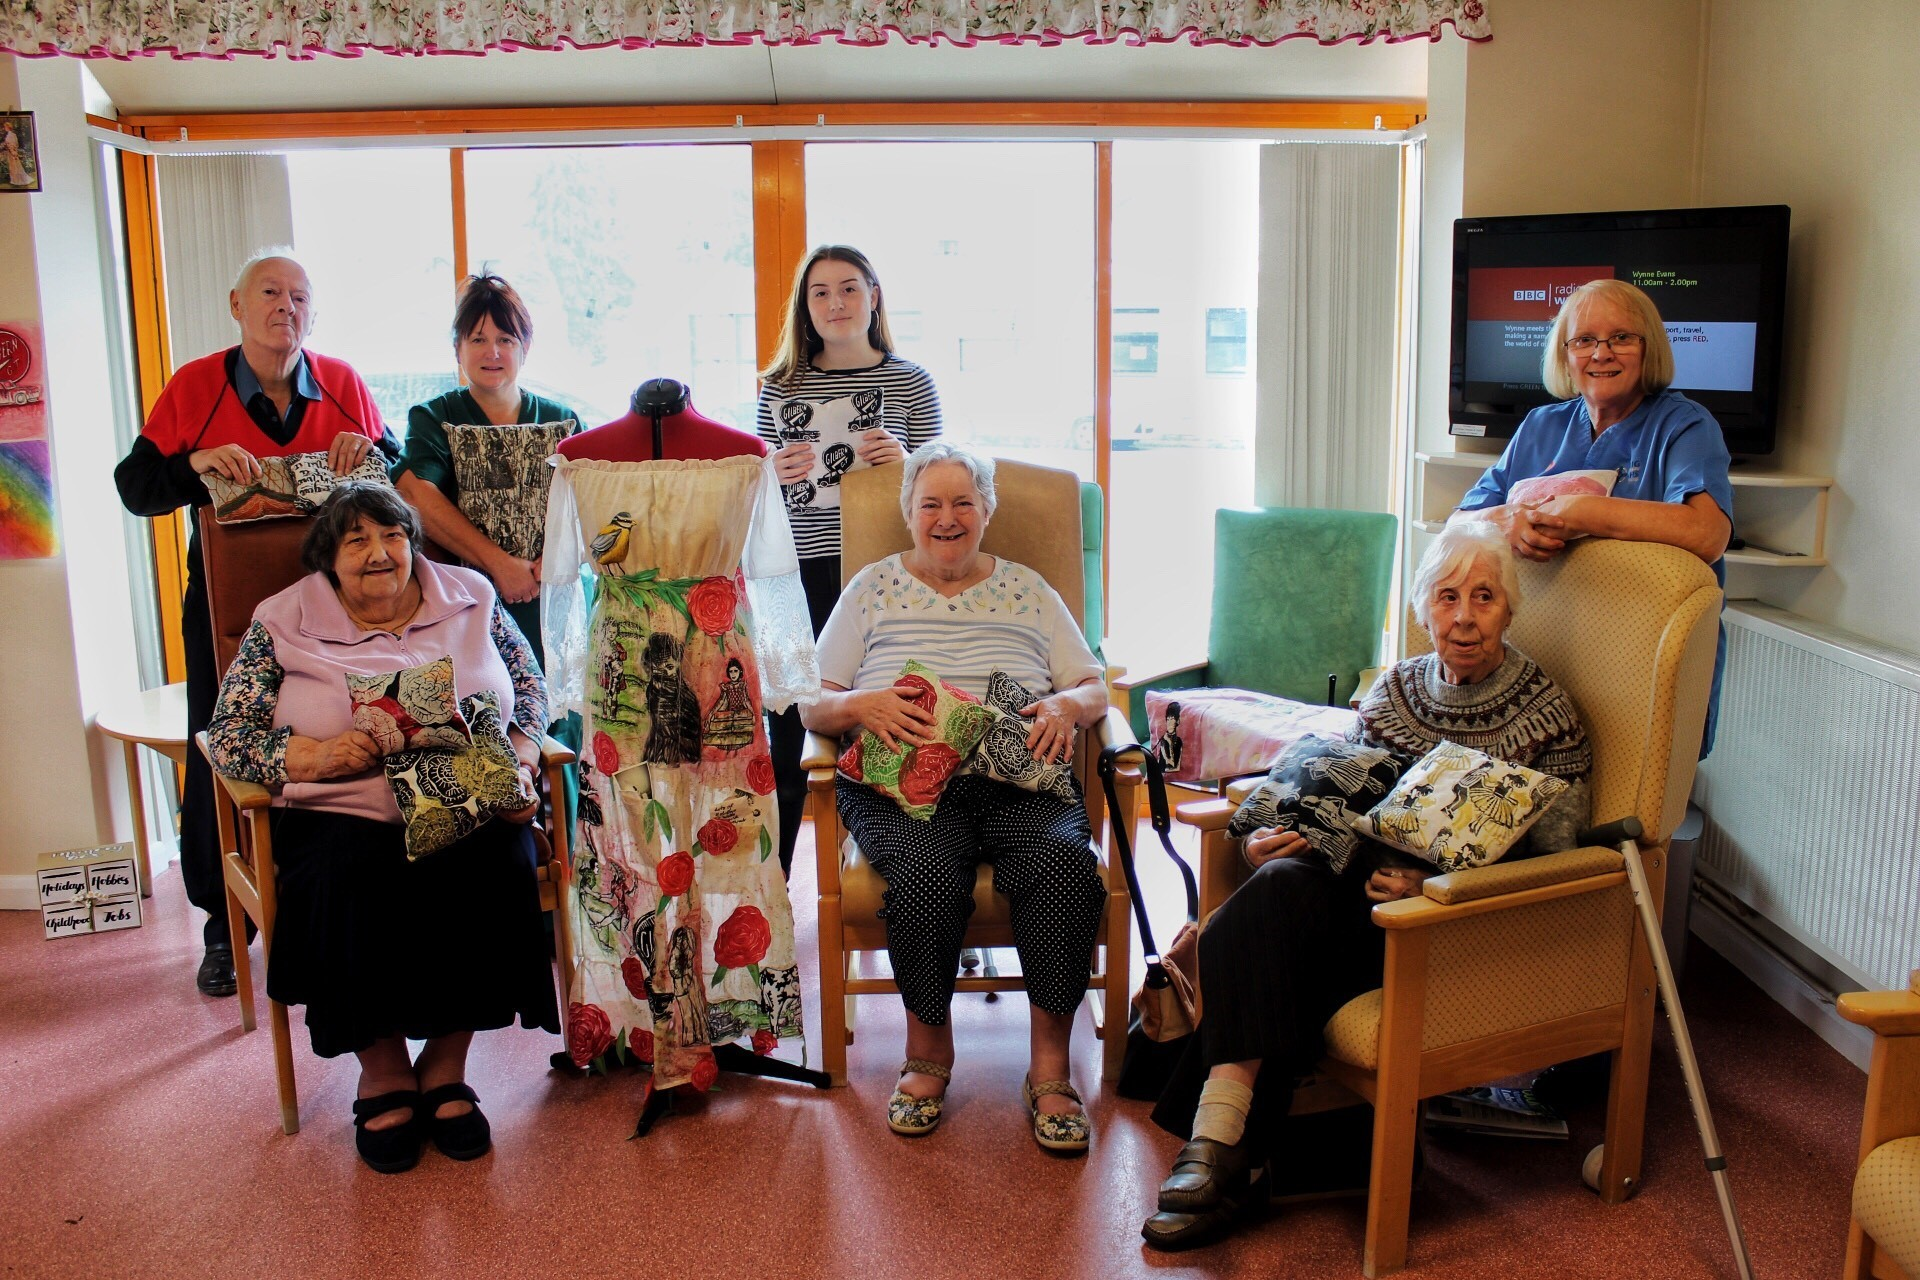 Student inspires Llanidloes hospital patients with art project